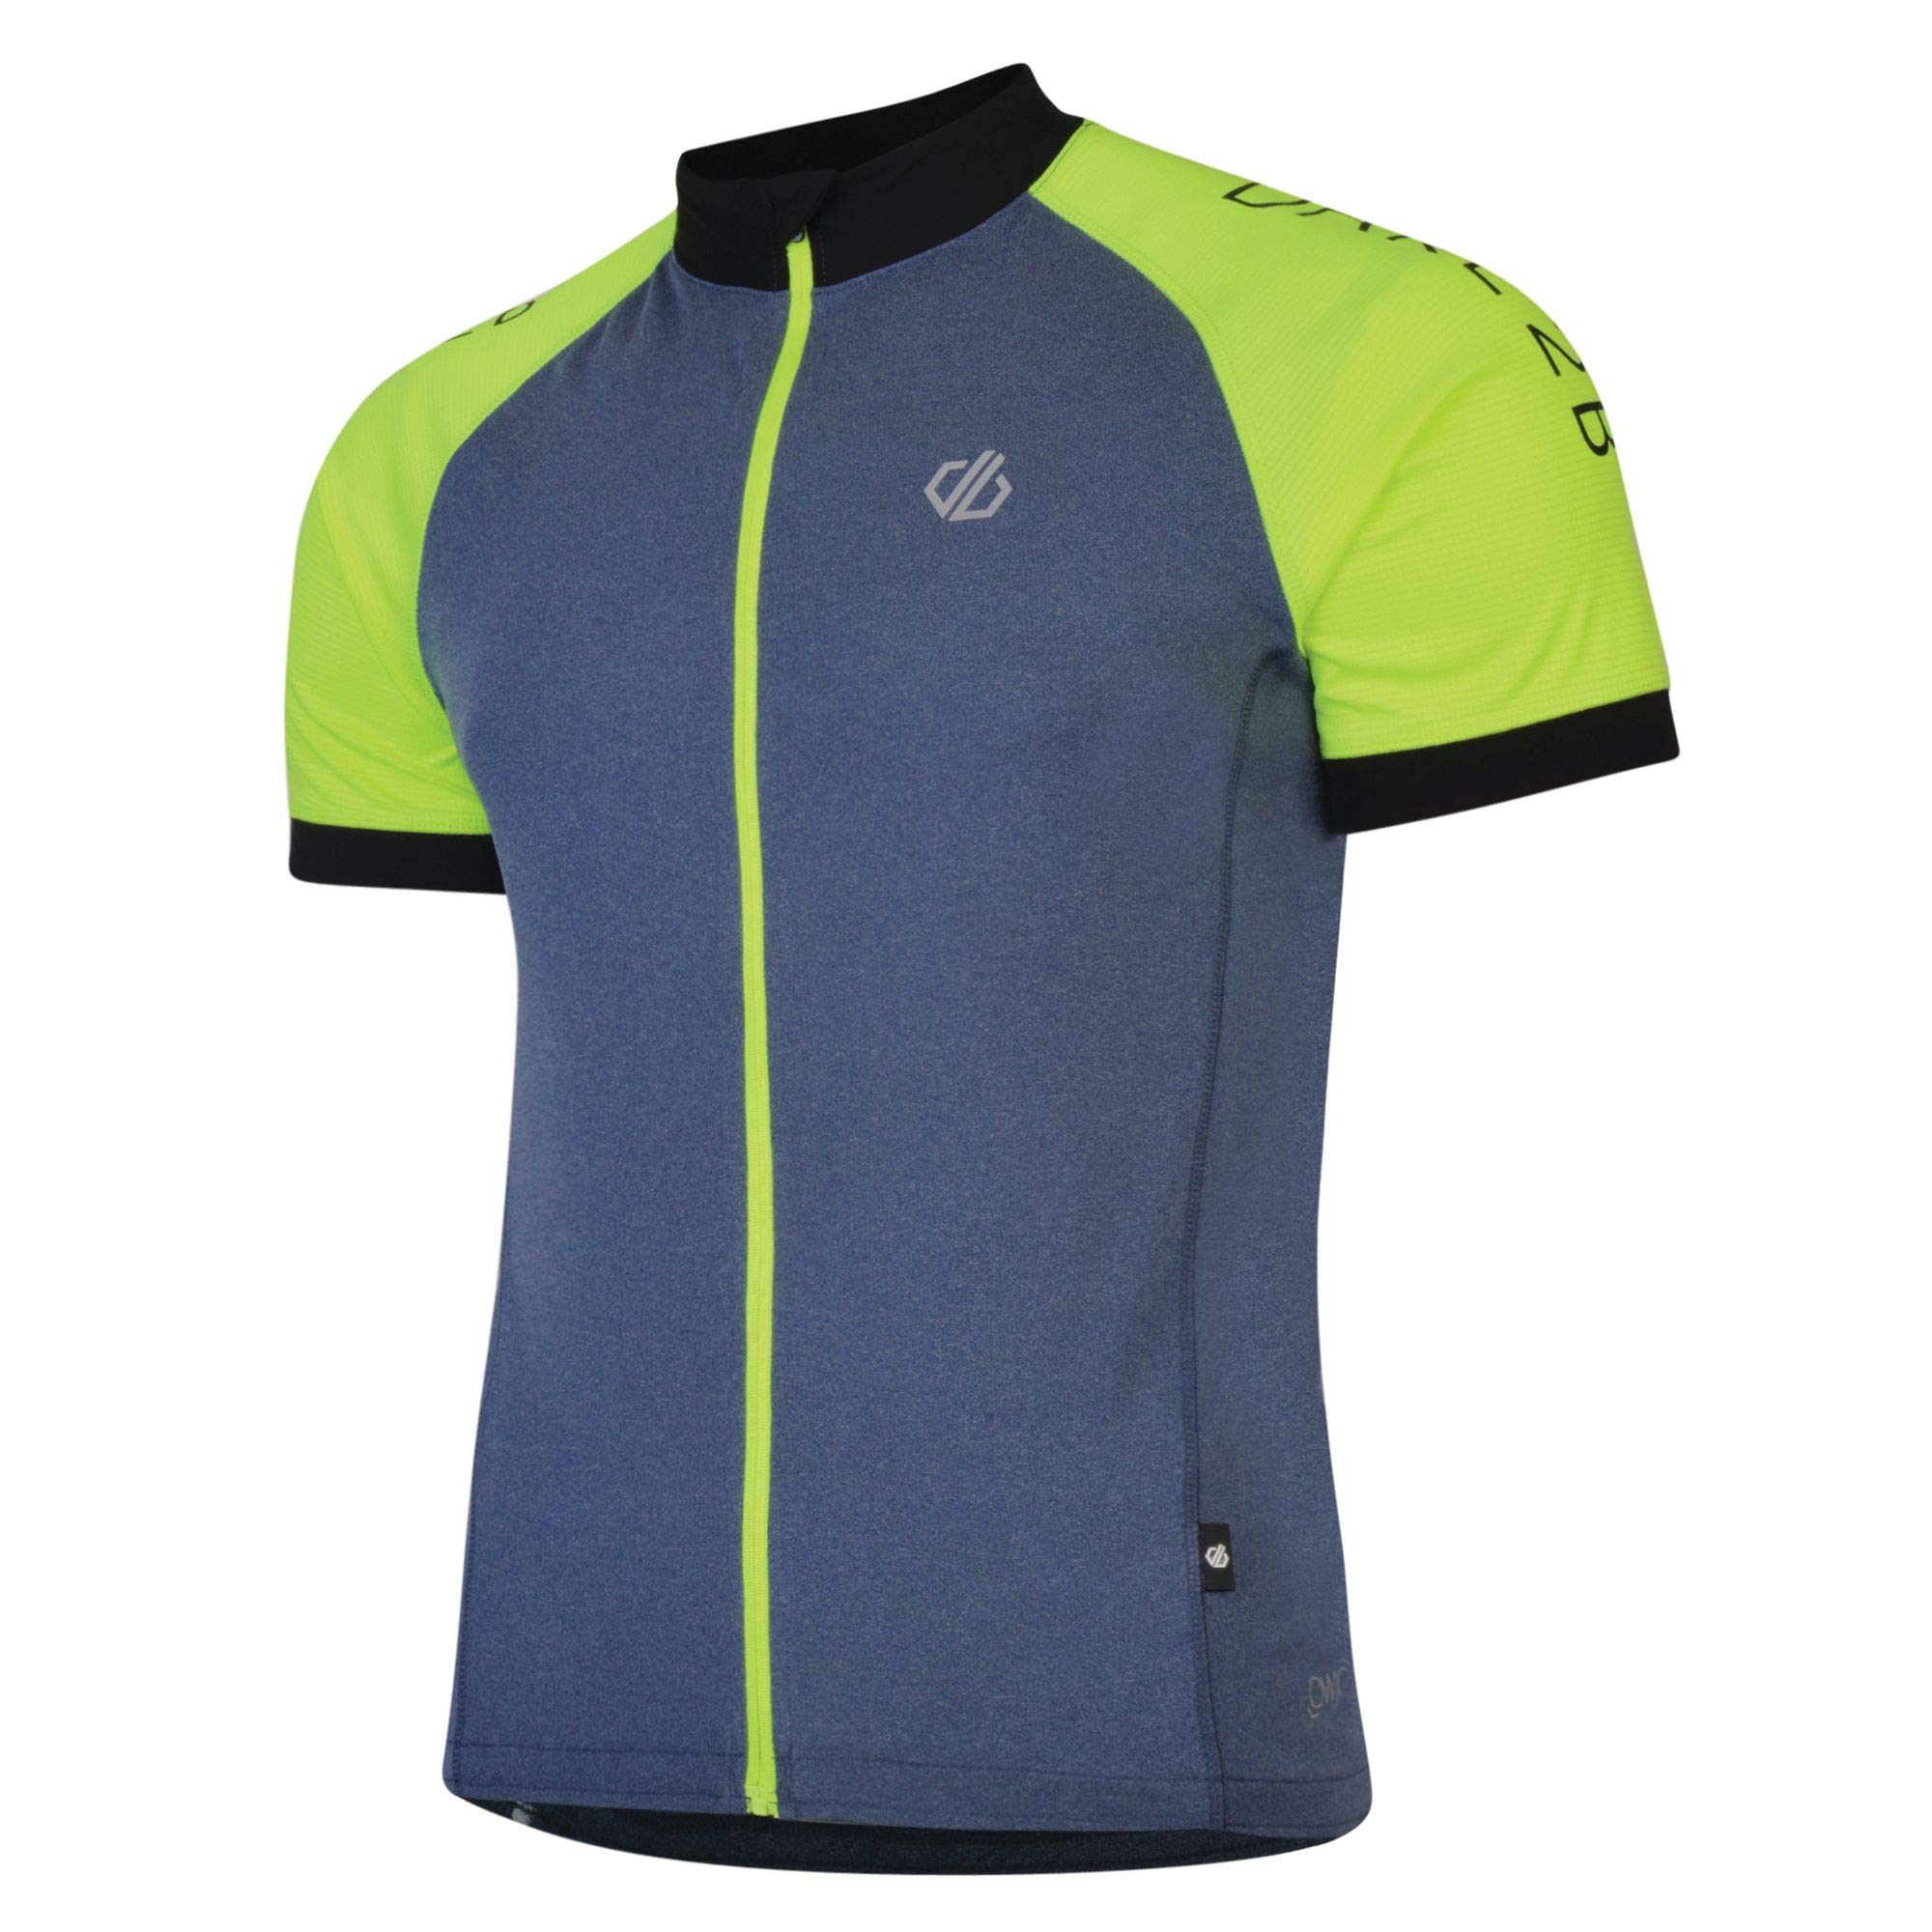 Jersey Hombre Dare 2b Accurate Lightweight Quick Drying Mesh Vented Full Zip Cycling